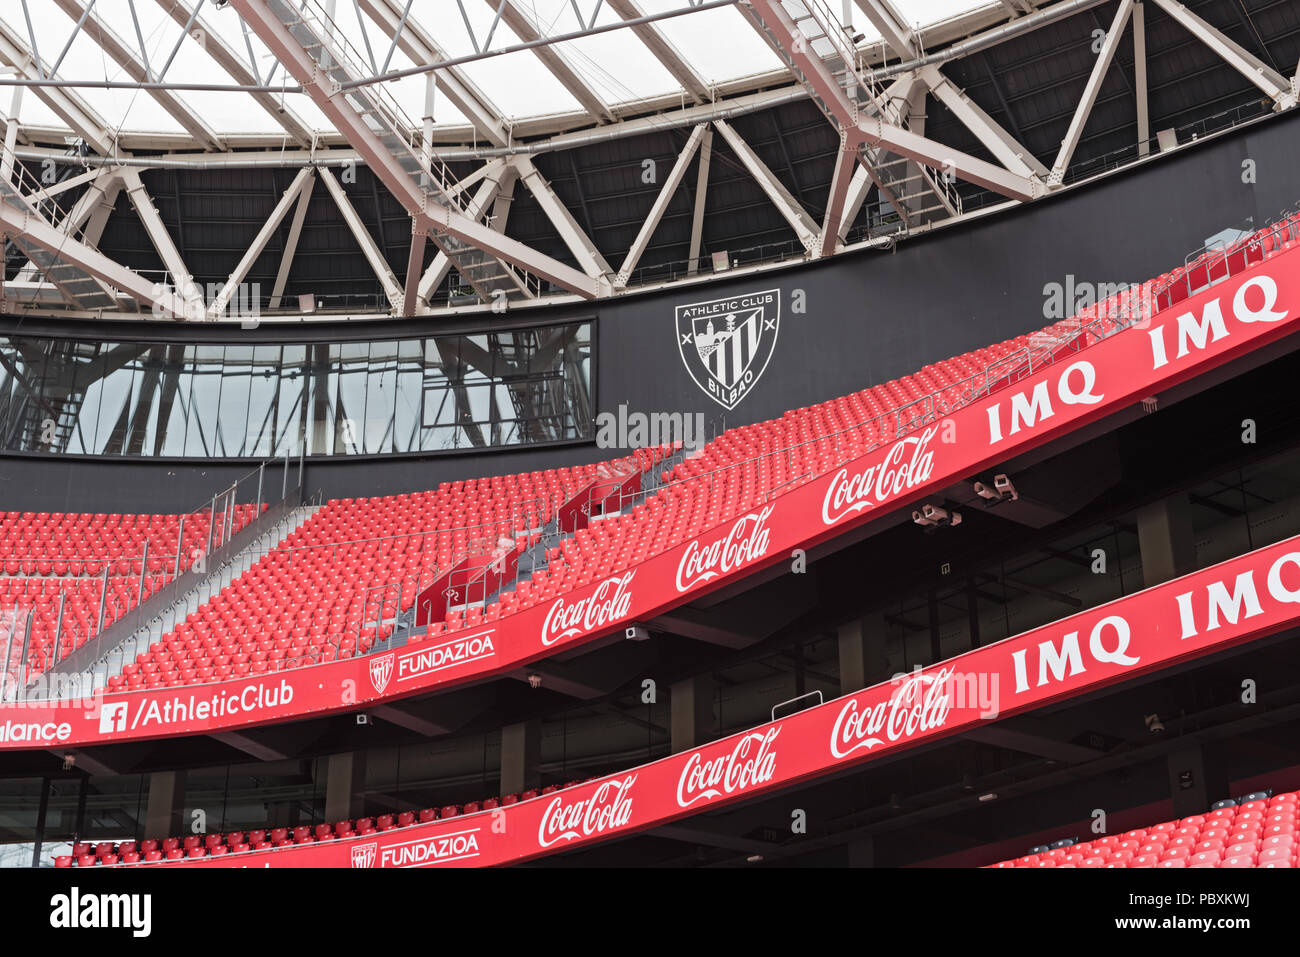 View of the stands of San Mames, football stadium, home of Athletic club Bilbao, Basque Country, Spain. - Stock Image